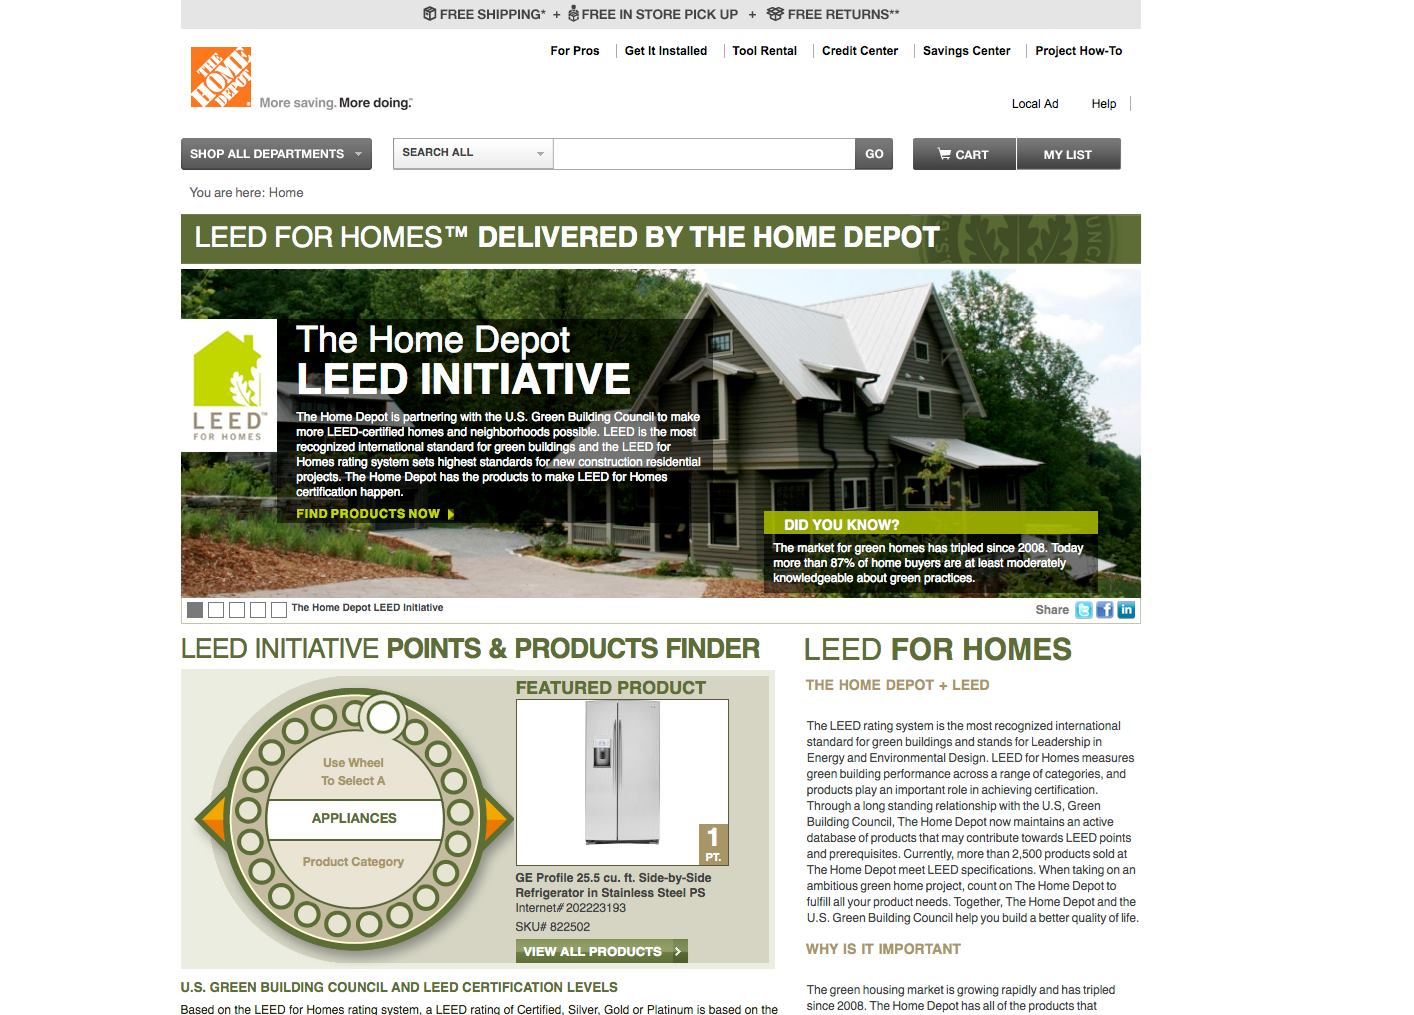 Home depot s blueprint for culture change research paper academic home depot s blueprint for culture change view this term paper on organizational culture of home malvernweather Image collections